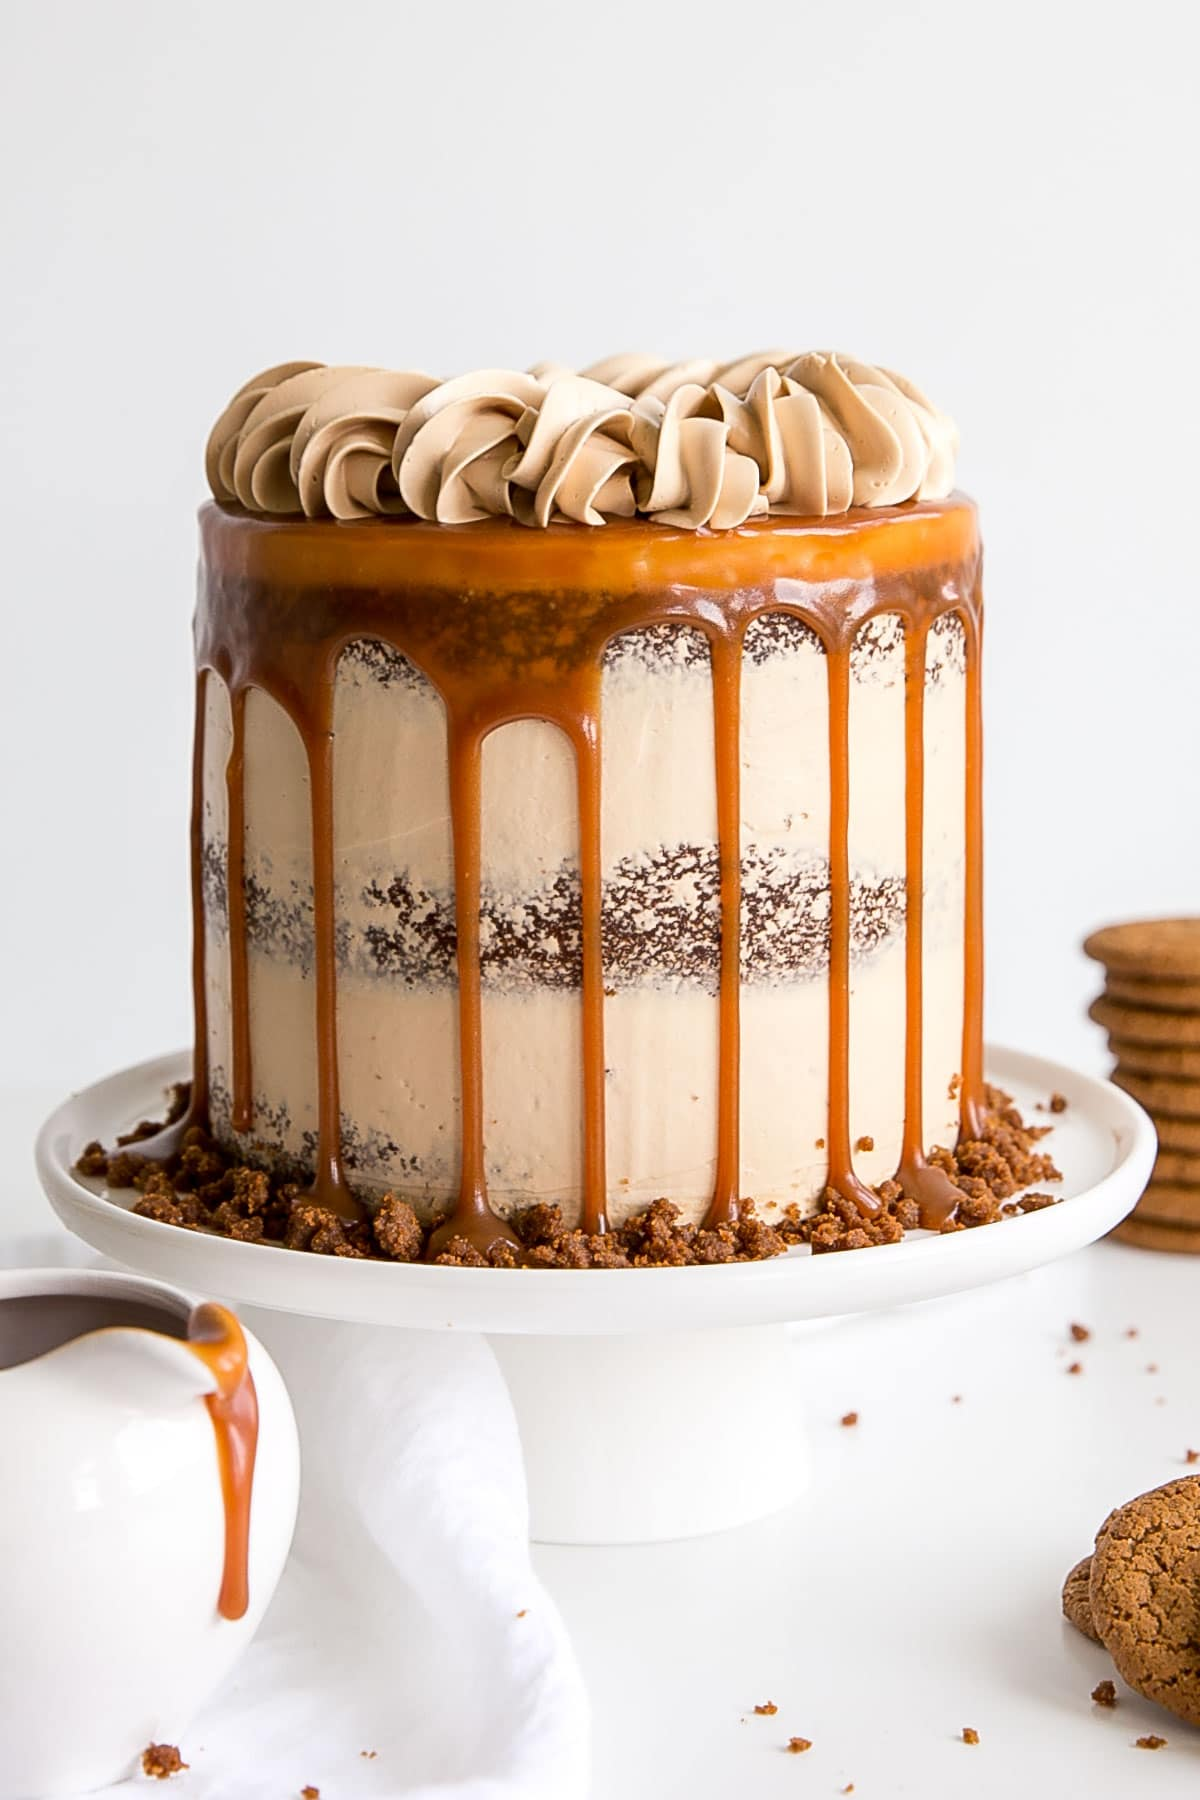 Gingerbread cake with caramel buttercream decorated naked cake style with a caramel drip.